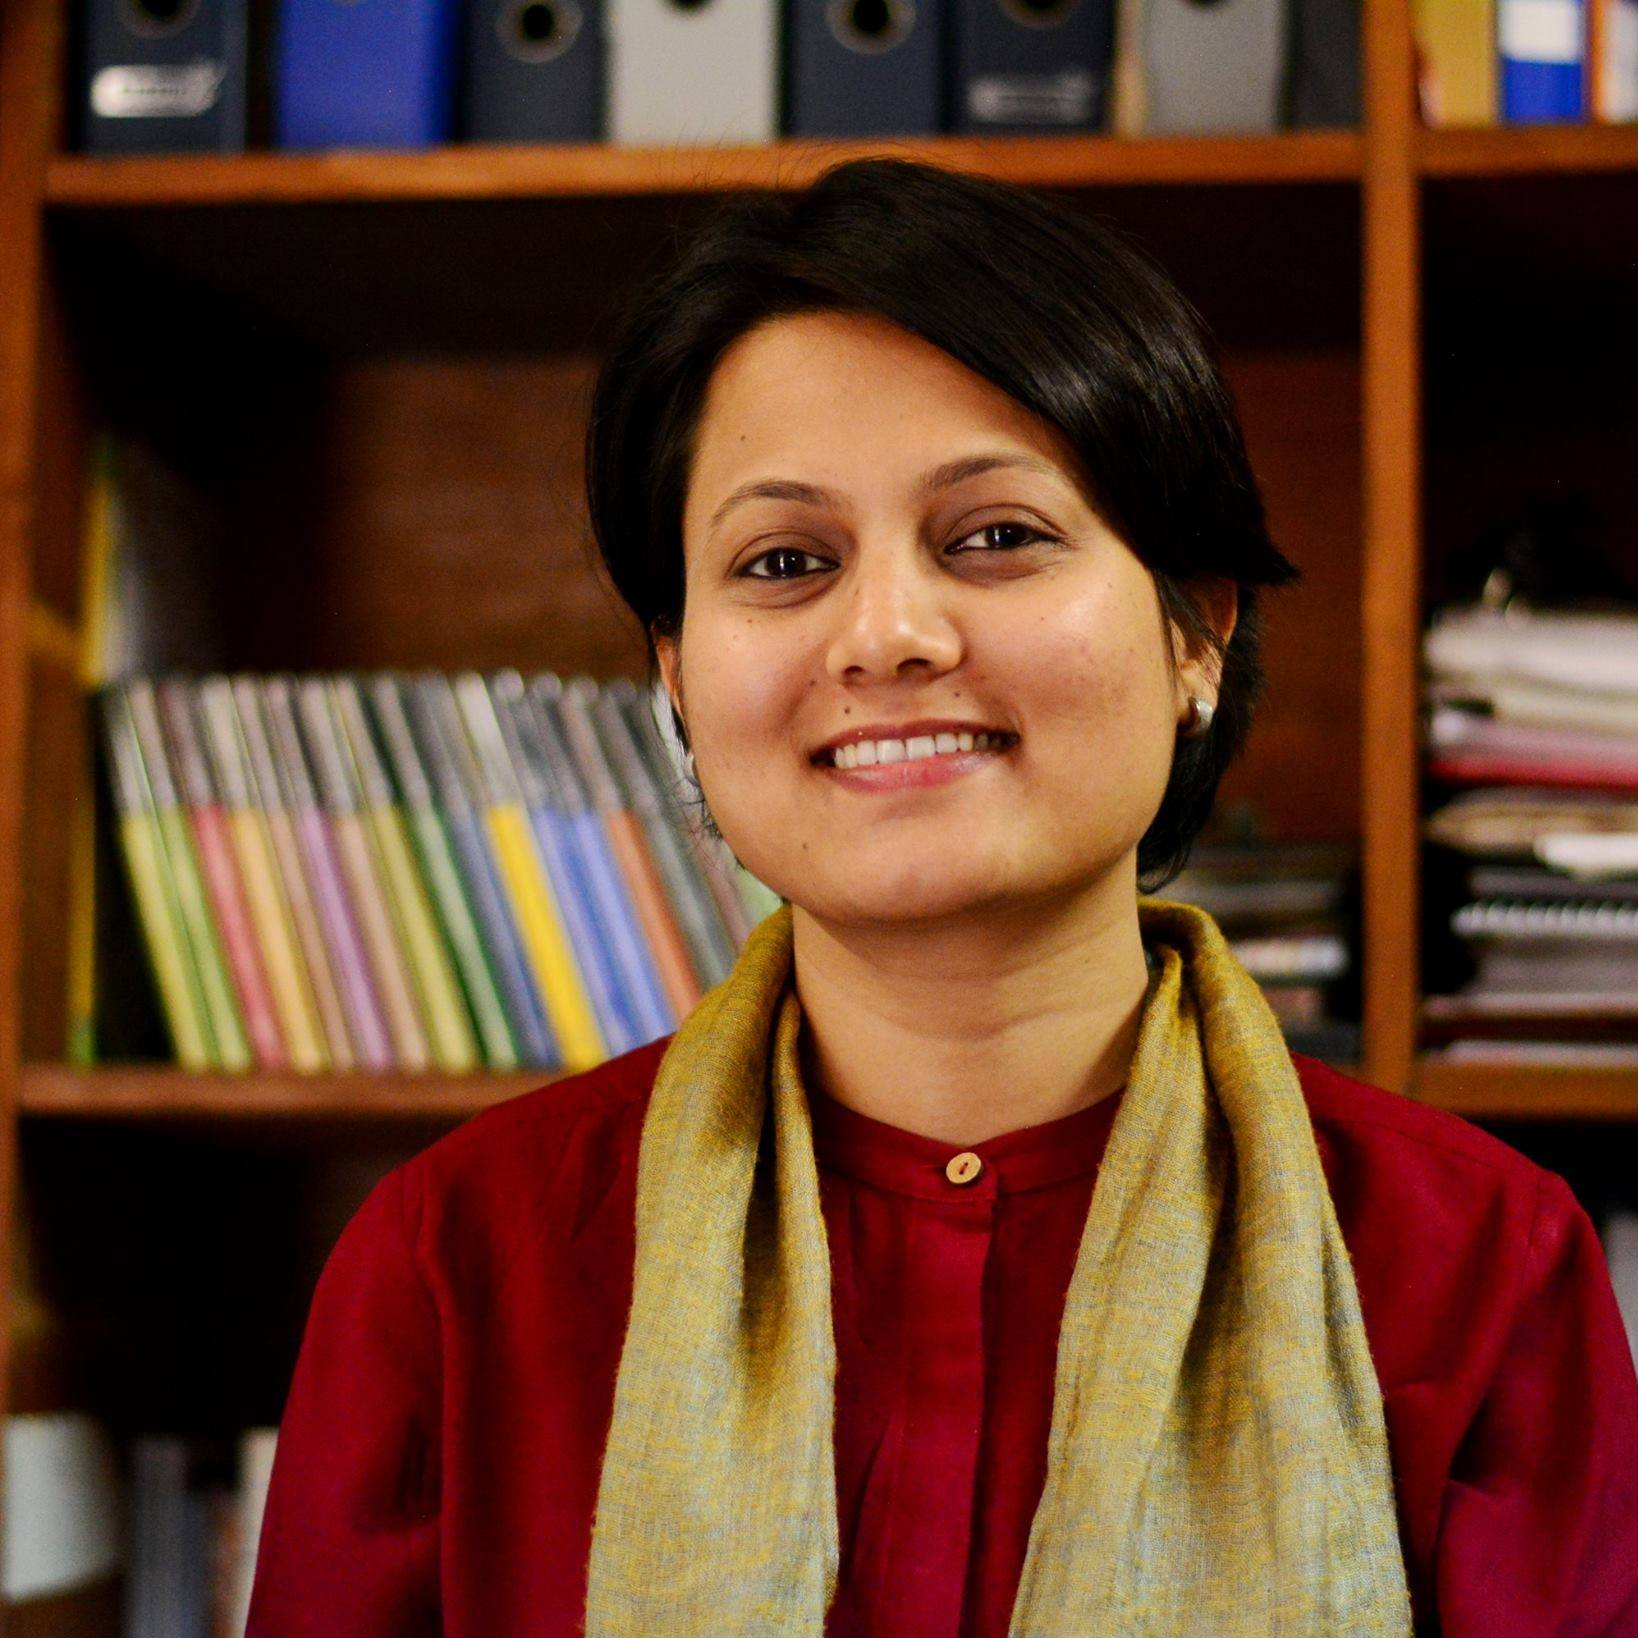 amruta khairnar-patil  Prof Chariar's webpage is a true reflection of principles he believes in. His positive vocabulary and experiential learning method makes lectures extremely thought provoking and vigorous!